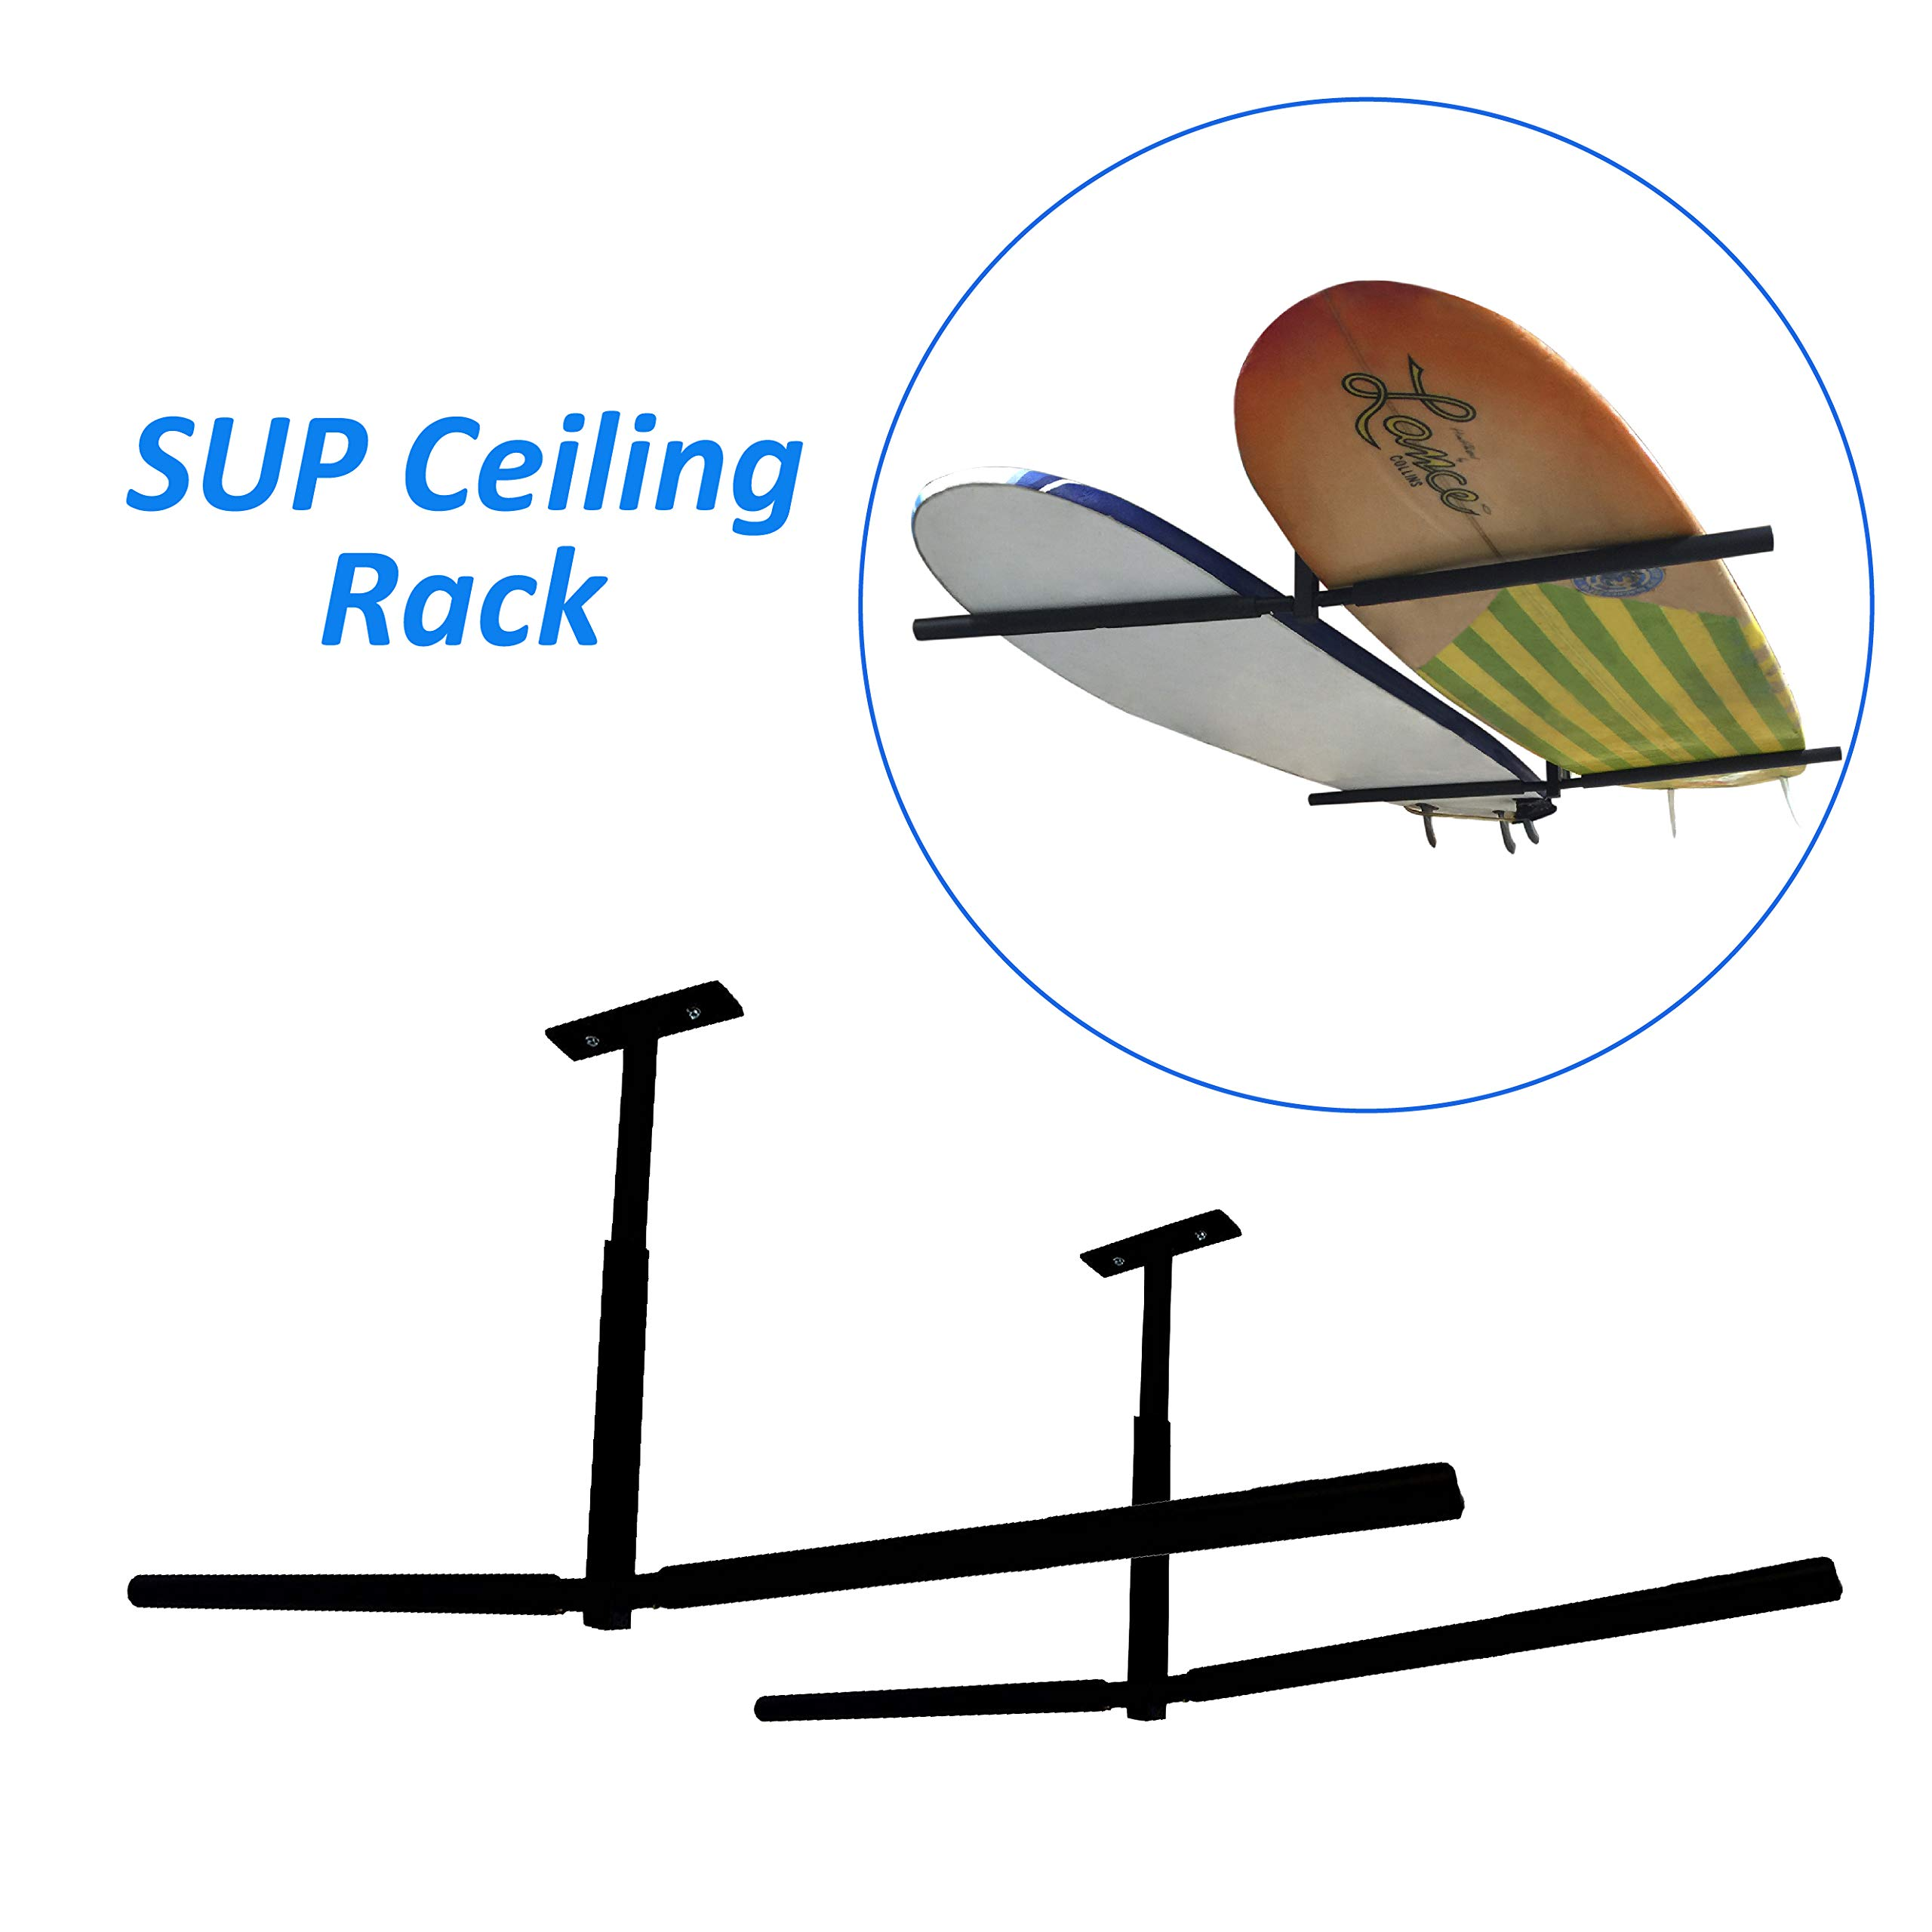 EasyGoProducts EGP-SURF-007 EasyGO SUP Surfboard Overhead Ceiling Mount-for Garage or Room-Paddle Board and Longboard Racks - Double Sided by EasyGoProducts